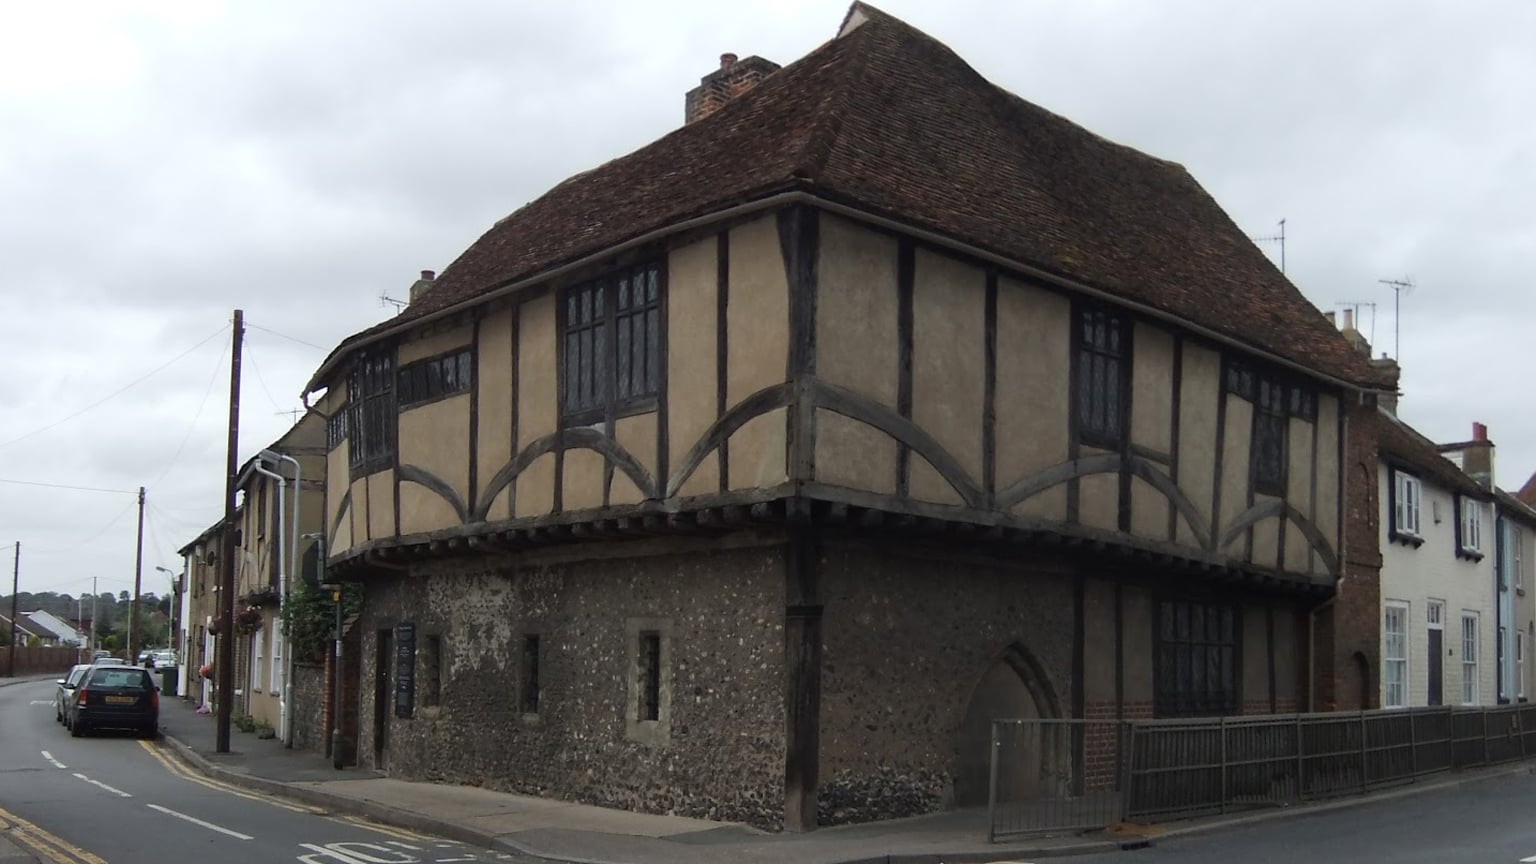 Steeped in history: the Maison Dieu